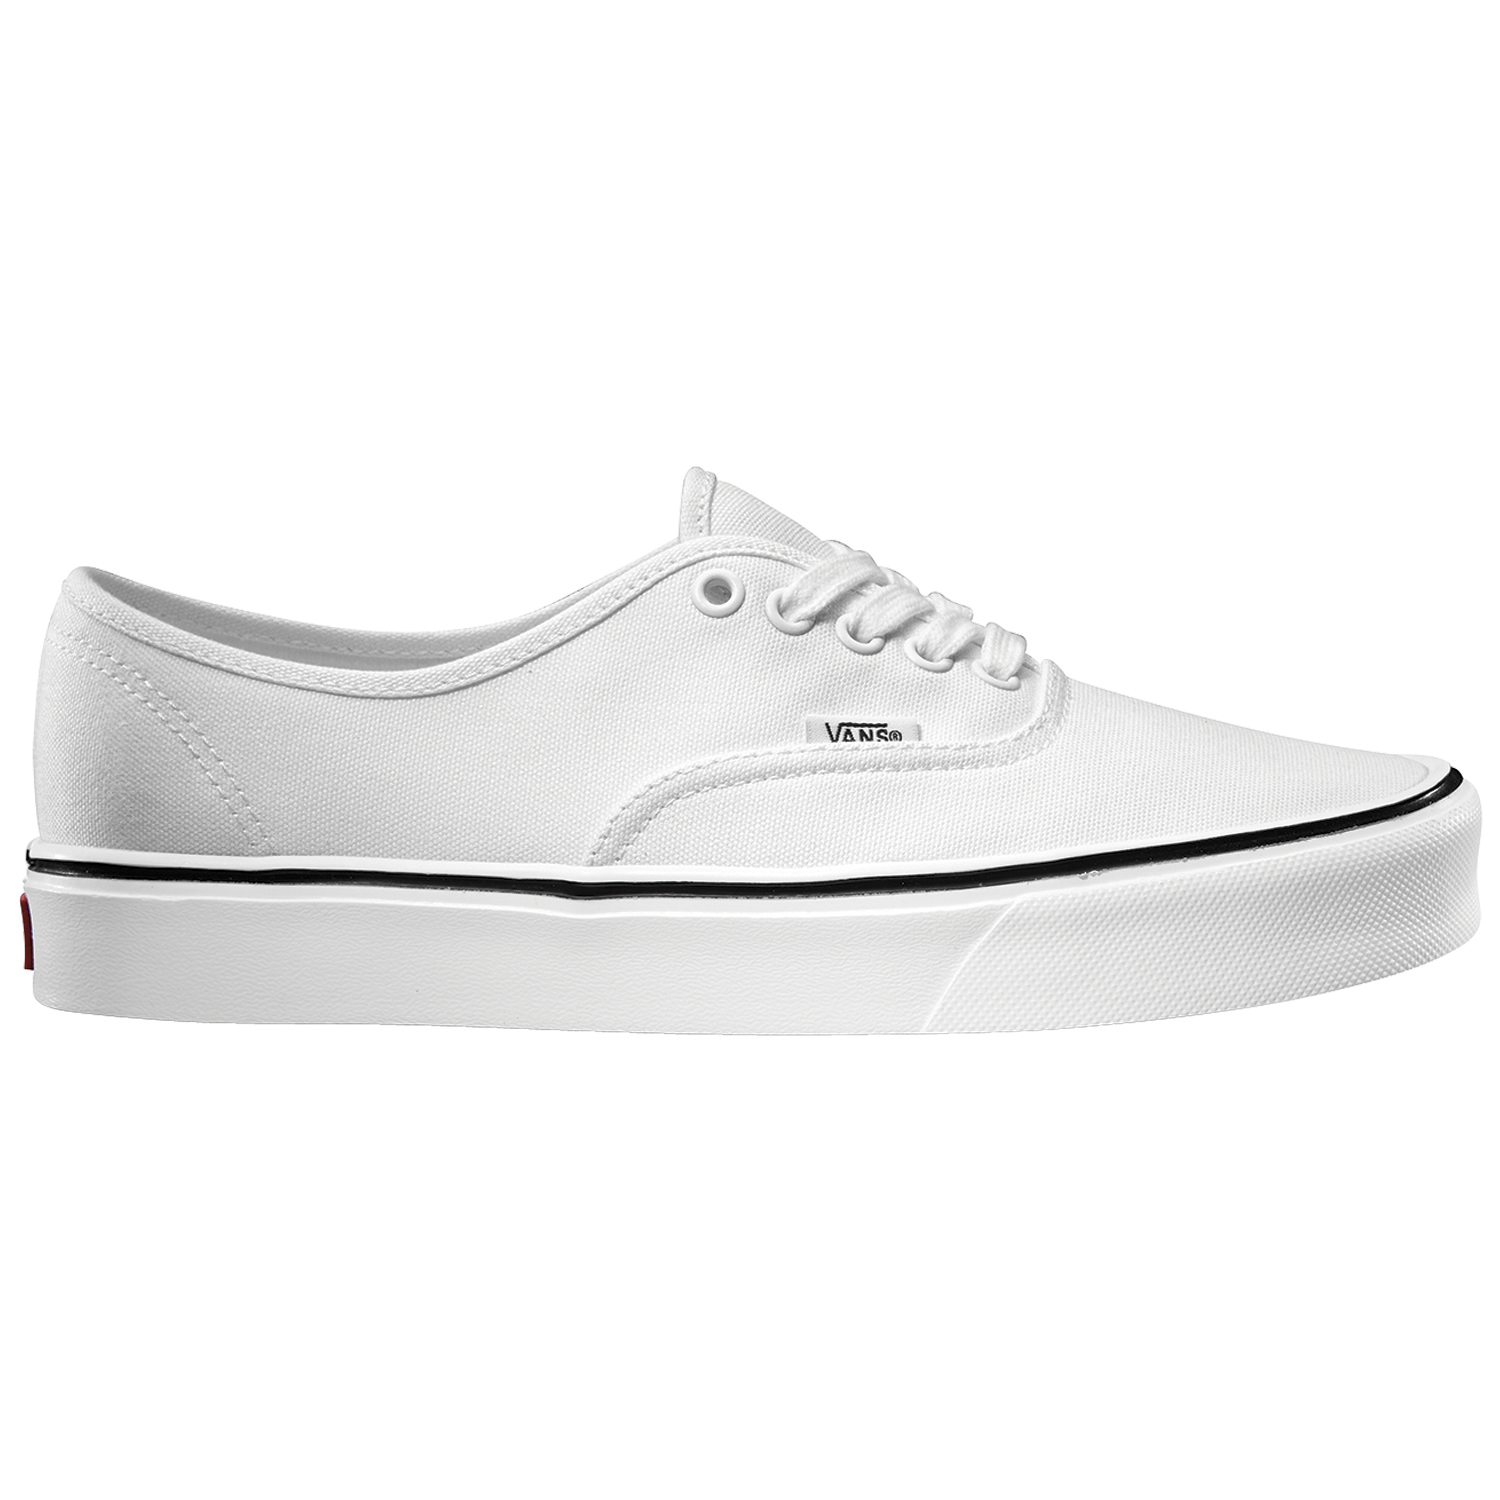 vans-authentic-lite-canvas-true-white-129-90